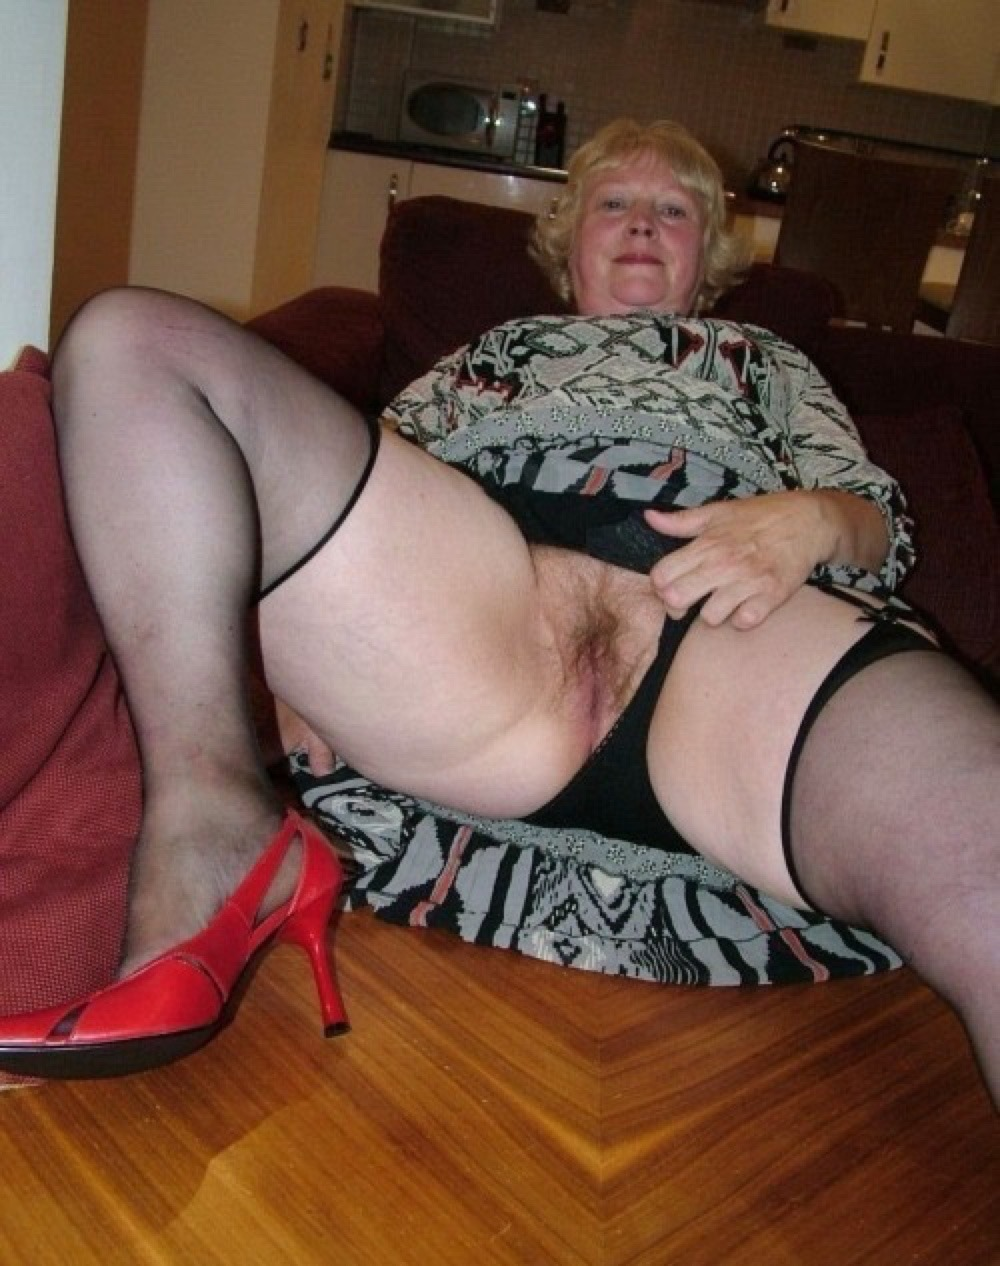 granny  pussy ass Granny pulling aside her pantys and showing her lovely pussy